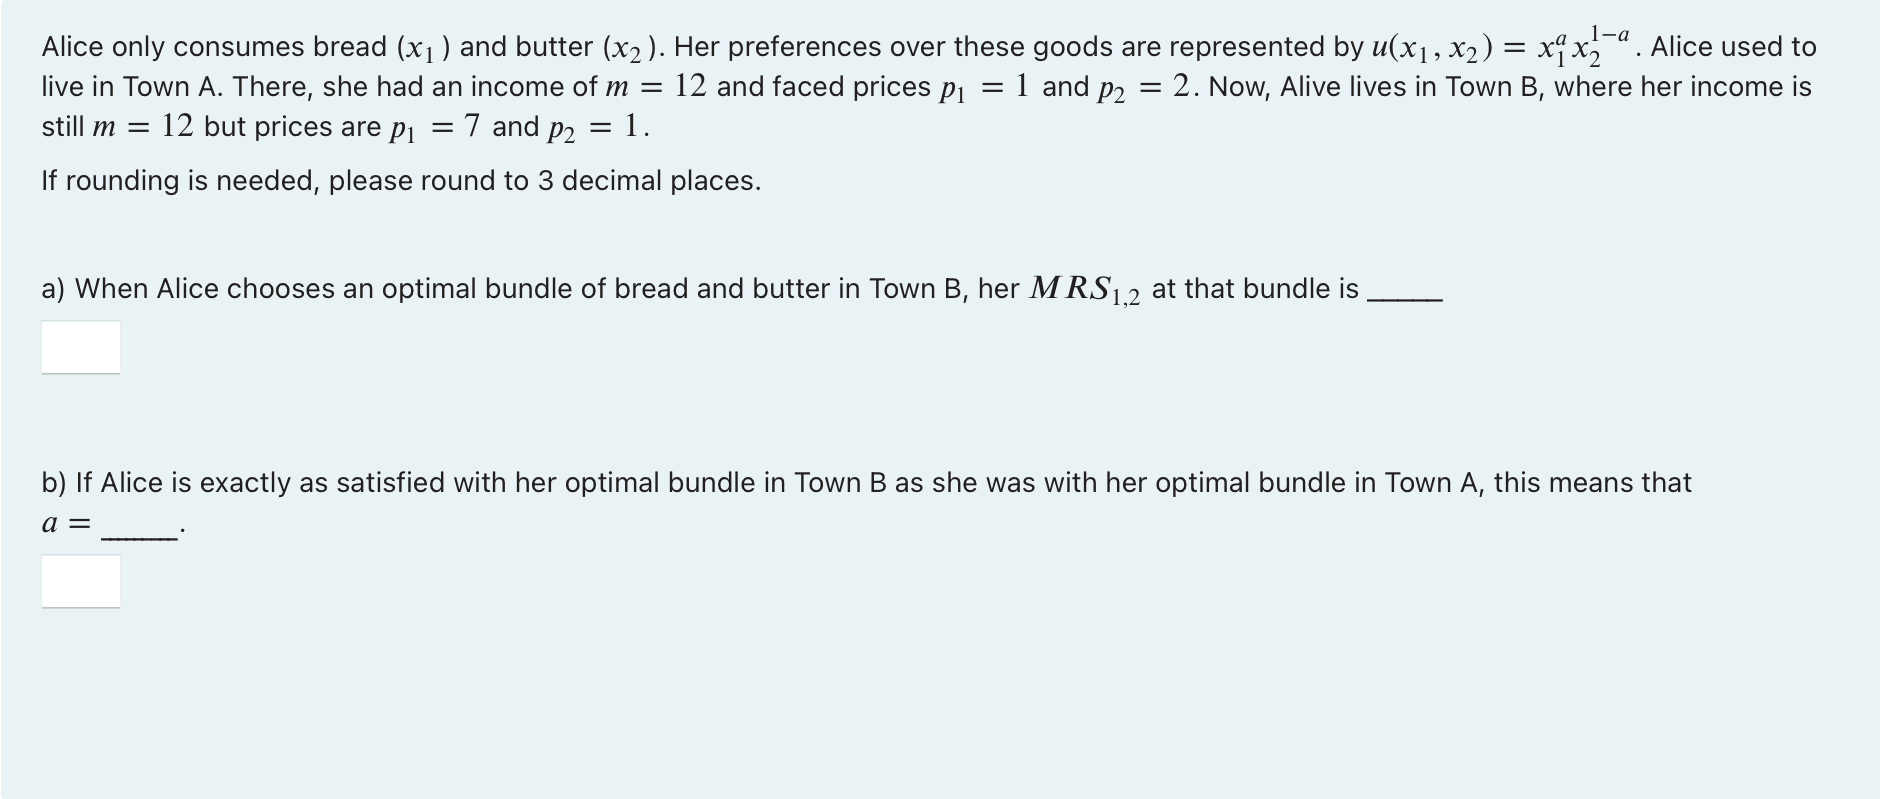 = 1 and P2 = Alice only consumes bread (x1) and butter (x2). Her preferences over these goods are represented by u(x1, x2) =